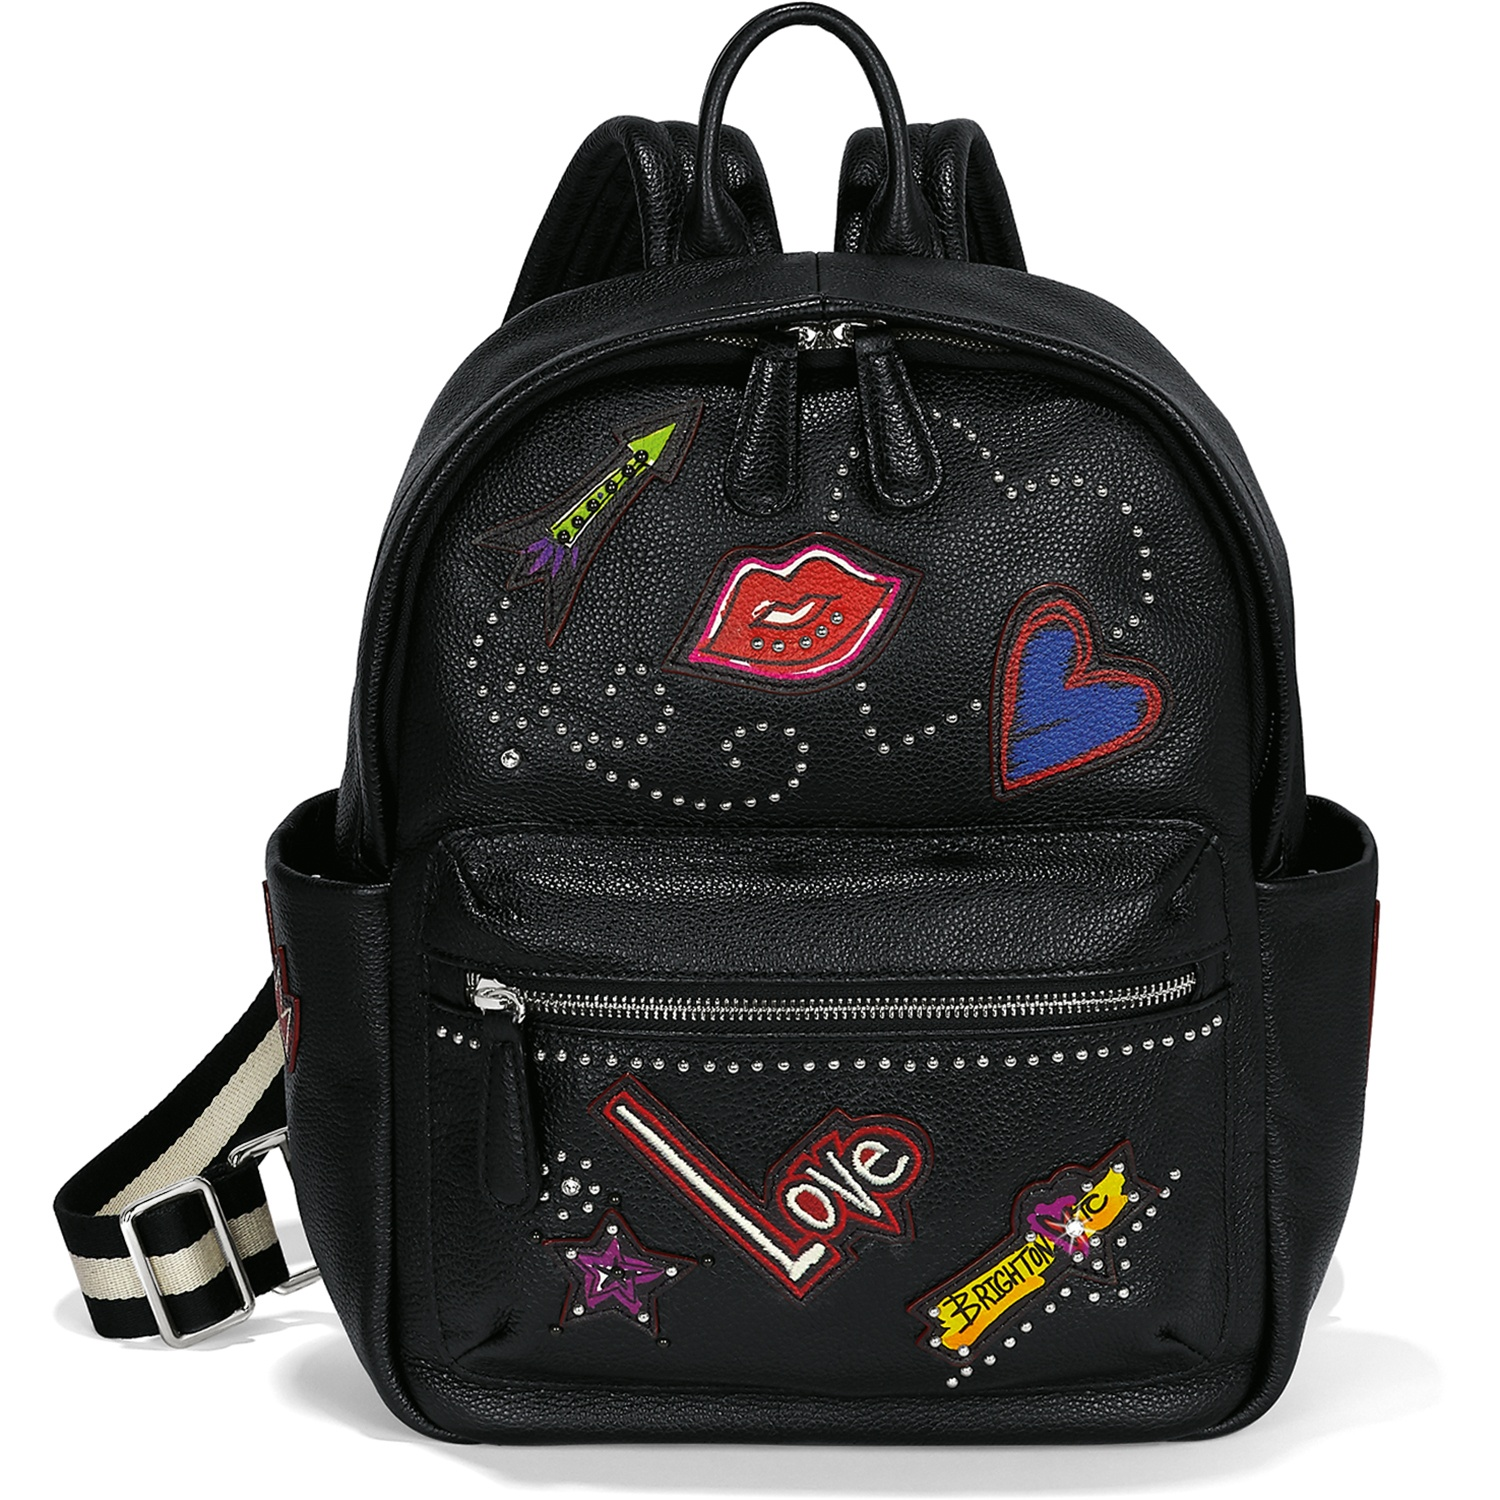 947a321275 Fashionista Love Scribble Backpack Backpacks